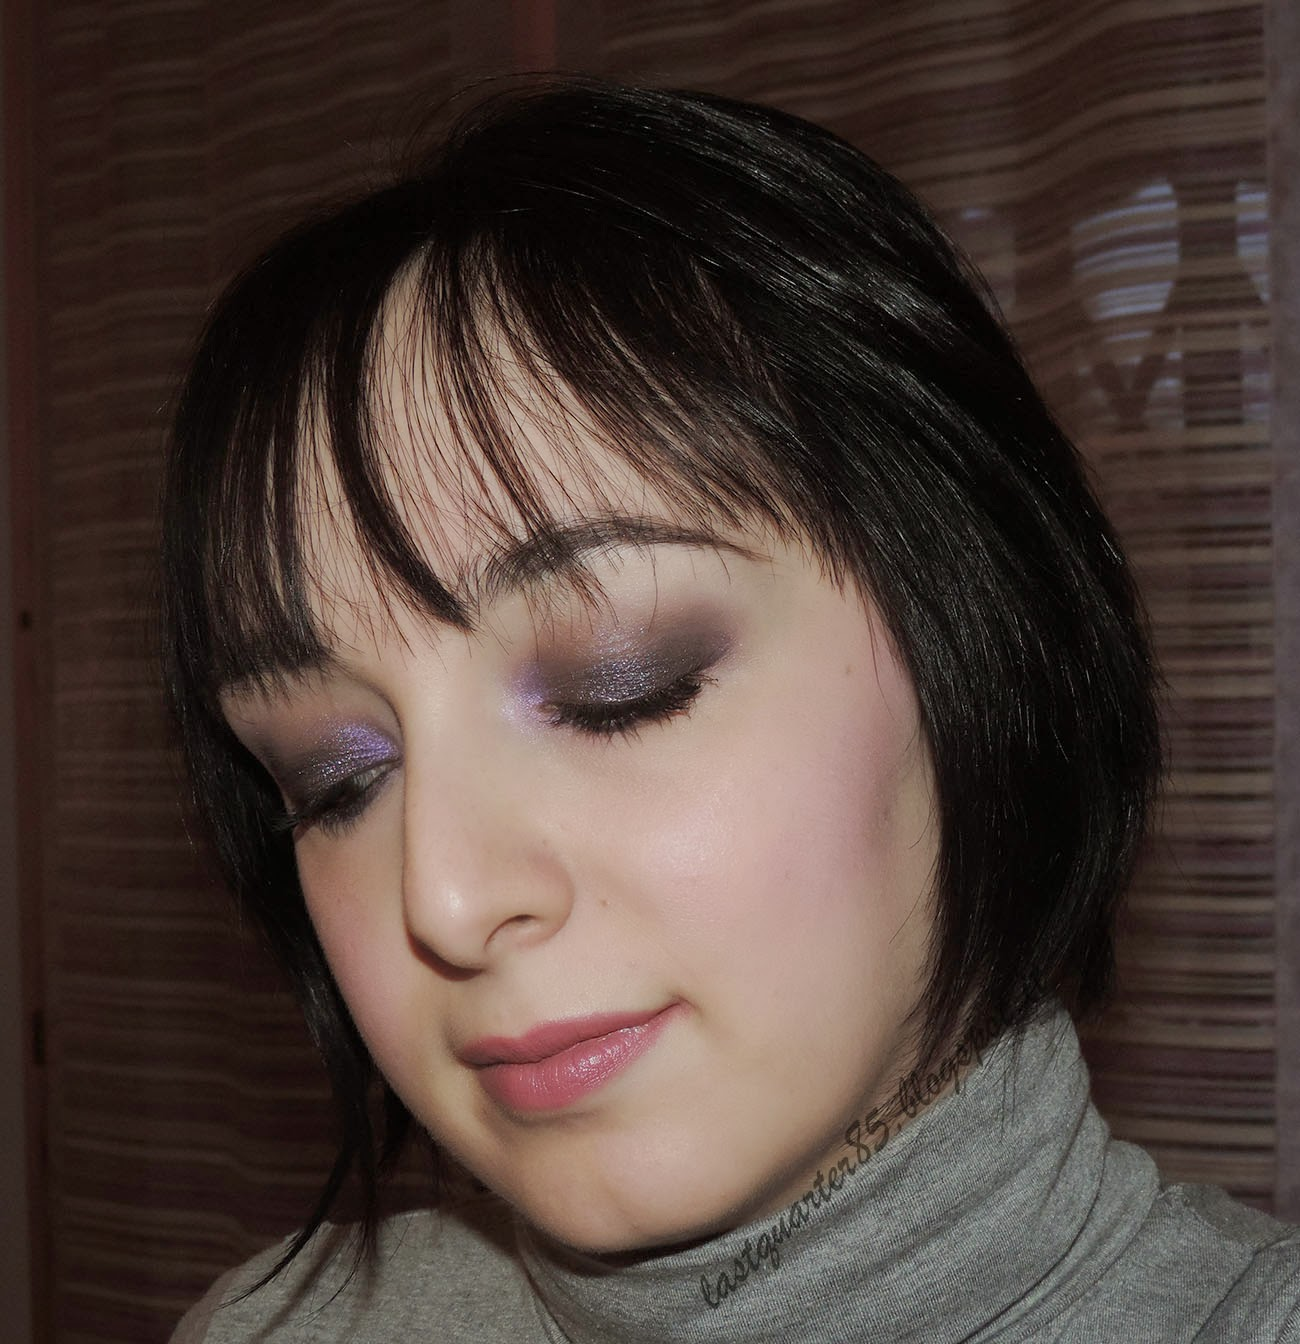 Make up per Wjcon Soft Mousse Blush 01.